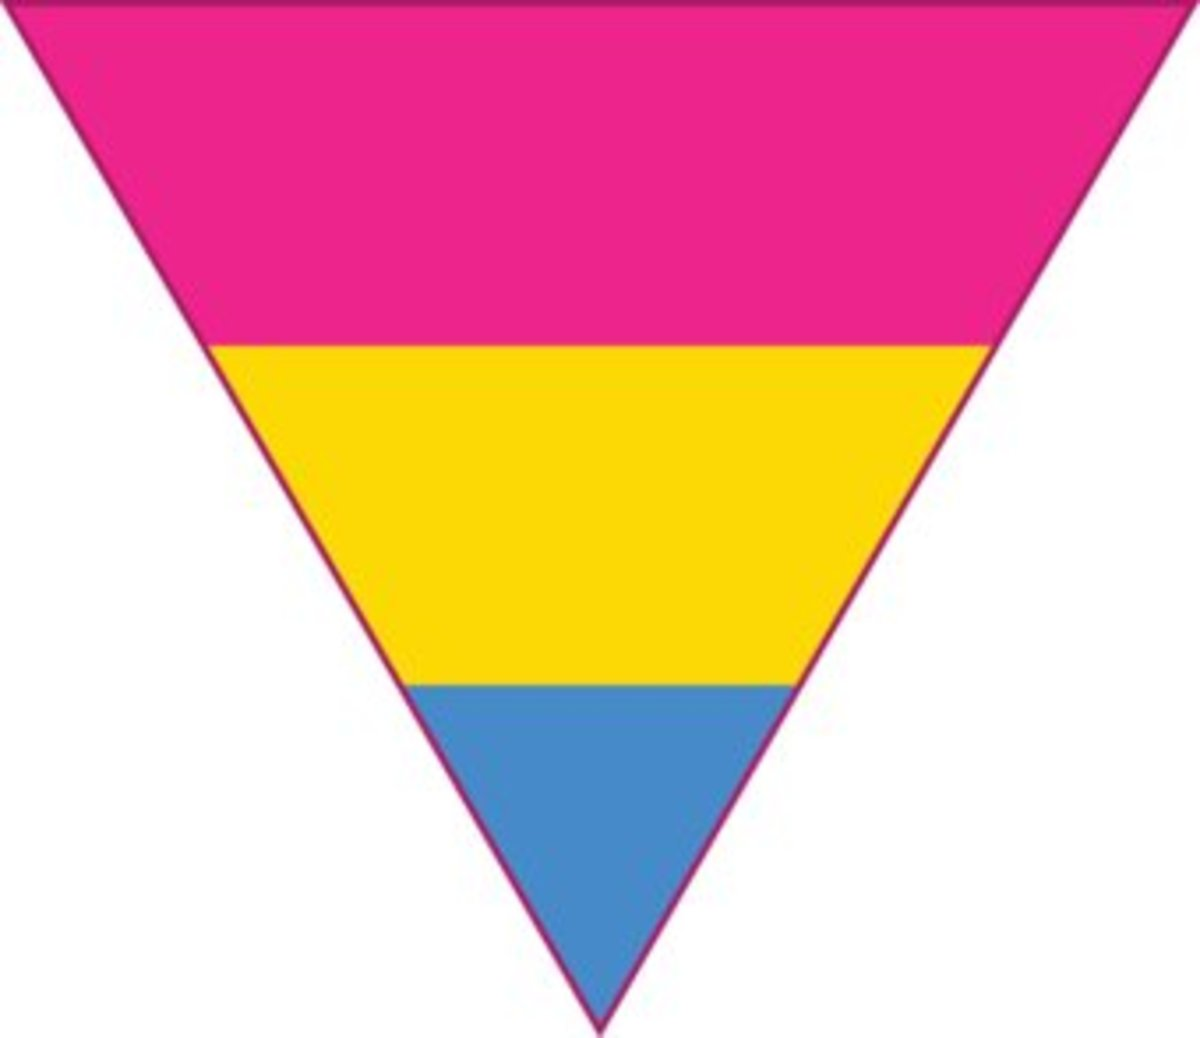 Still gay. (Pansexual colours)